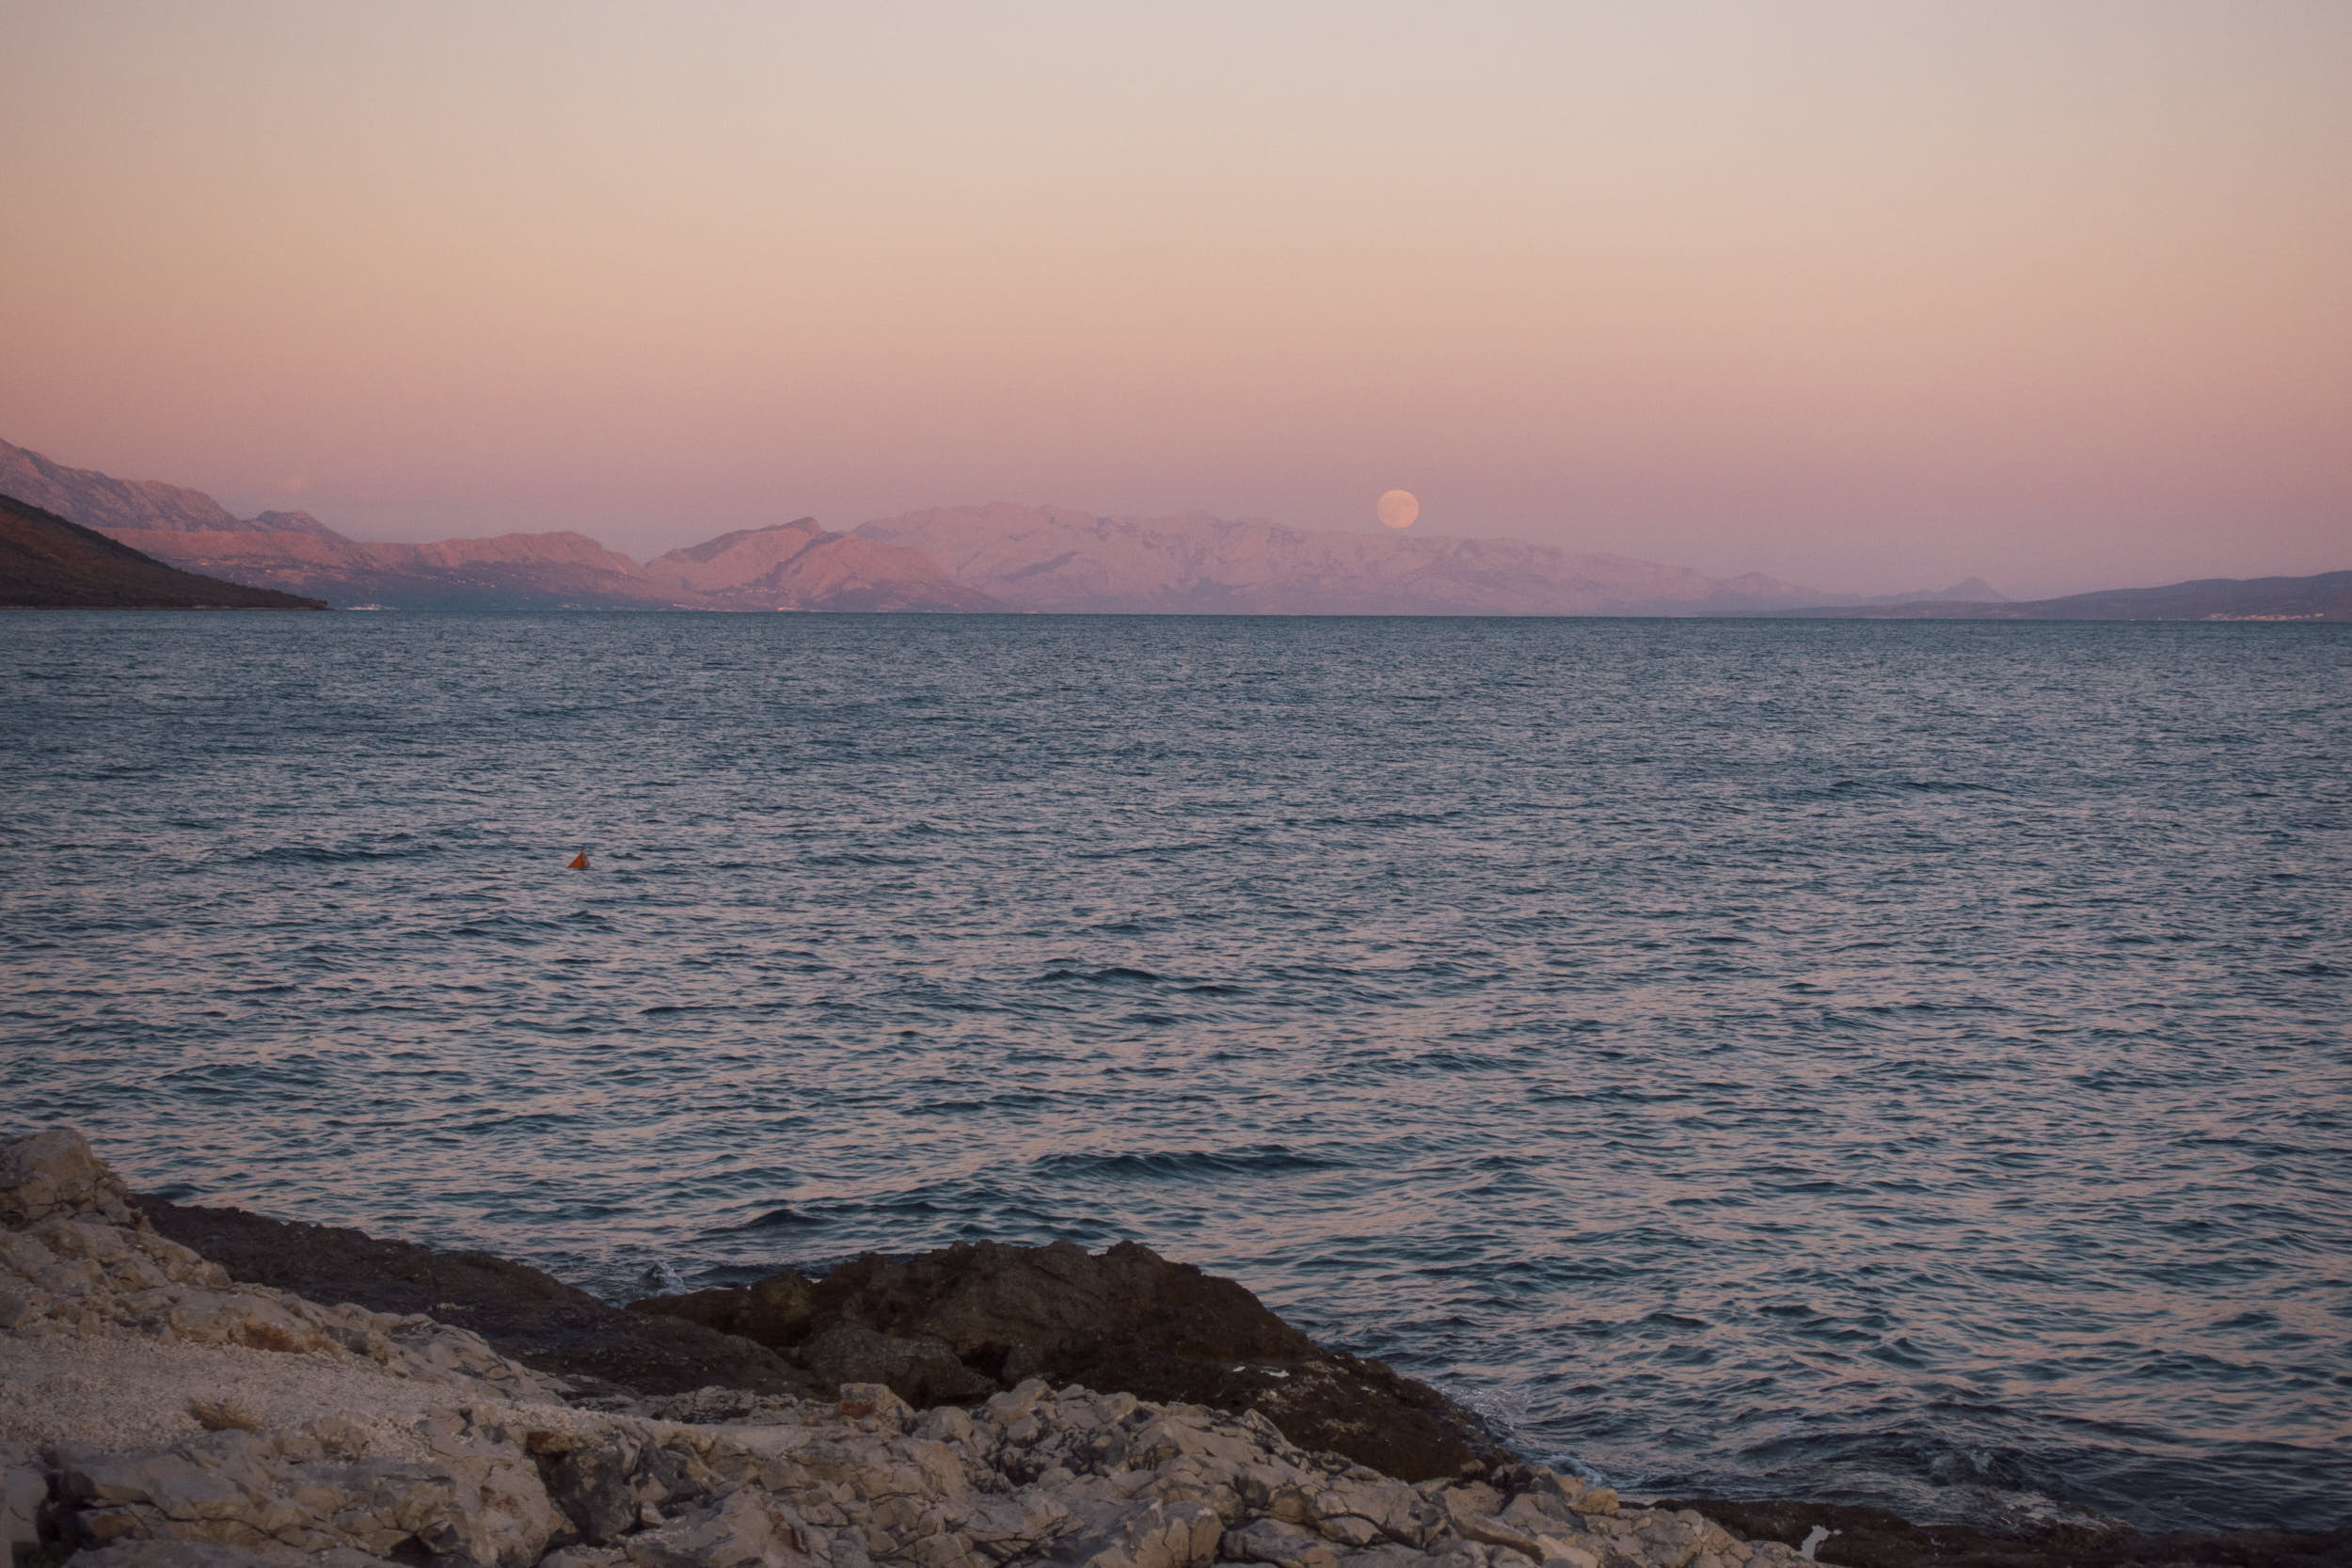 Beautiful seascape with moon rising in the distance.